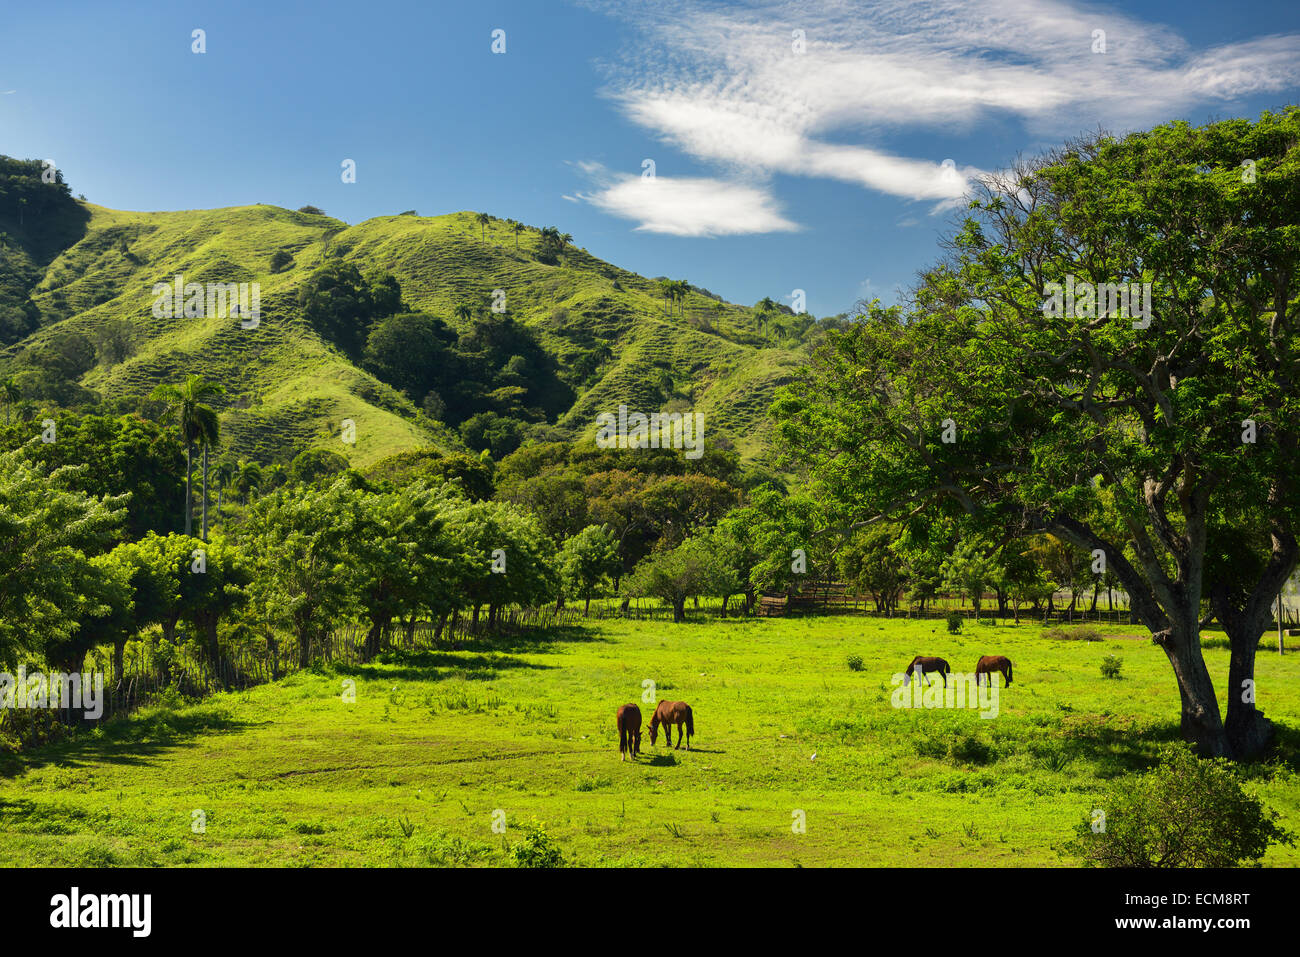 Horses grazing on green grass of ranch land beside a mountain west of Puerto Plata Dominican Republic - Stock Image